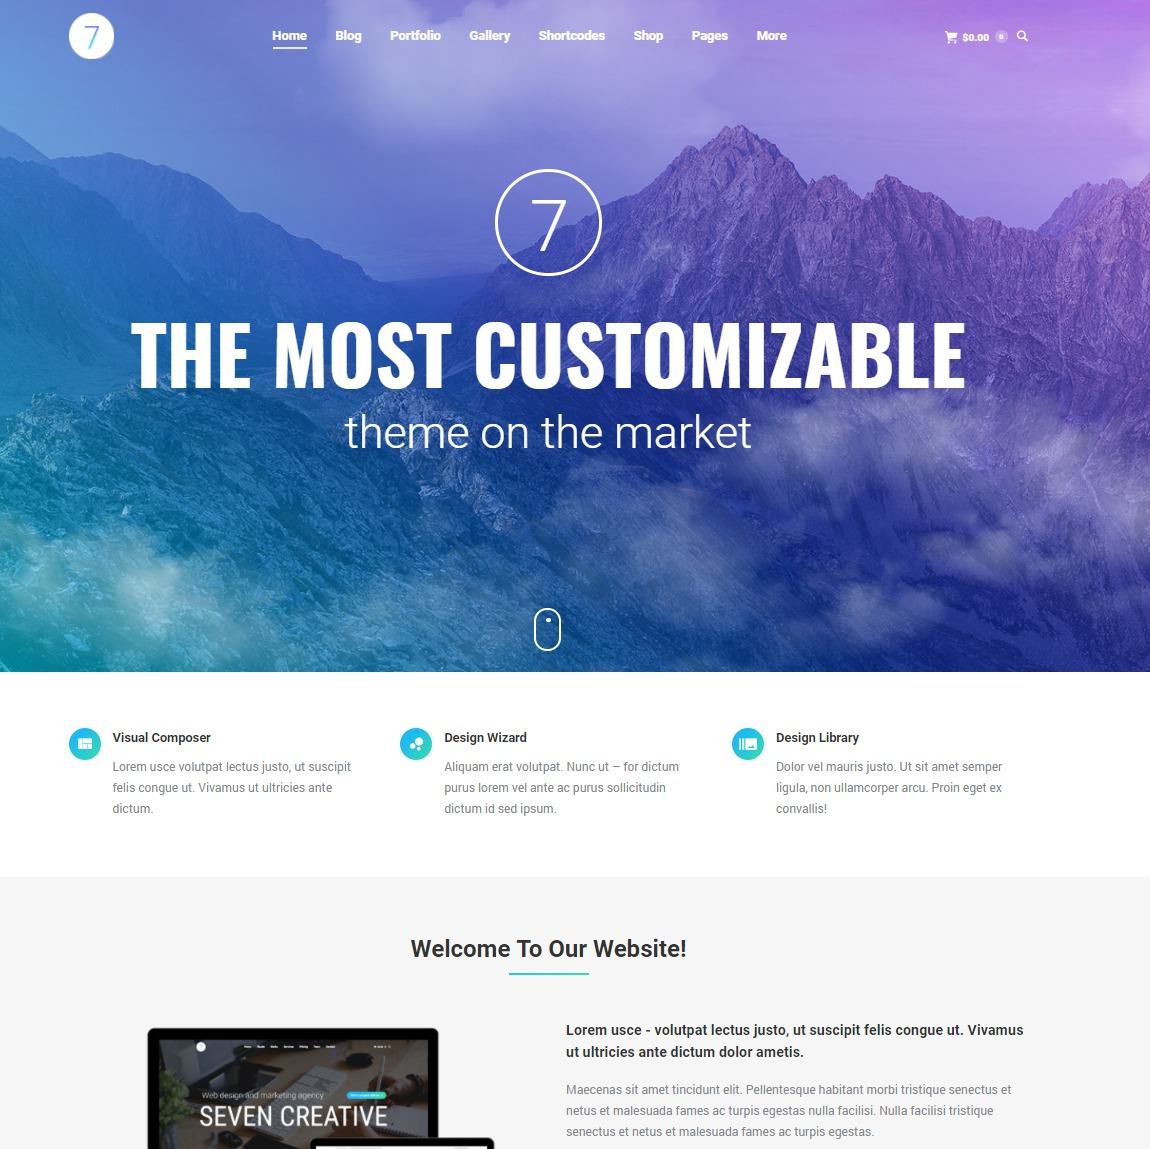 The7-customizable-wp-theme